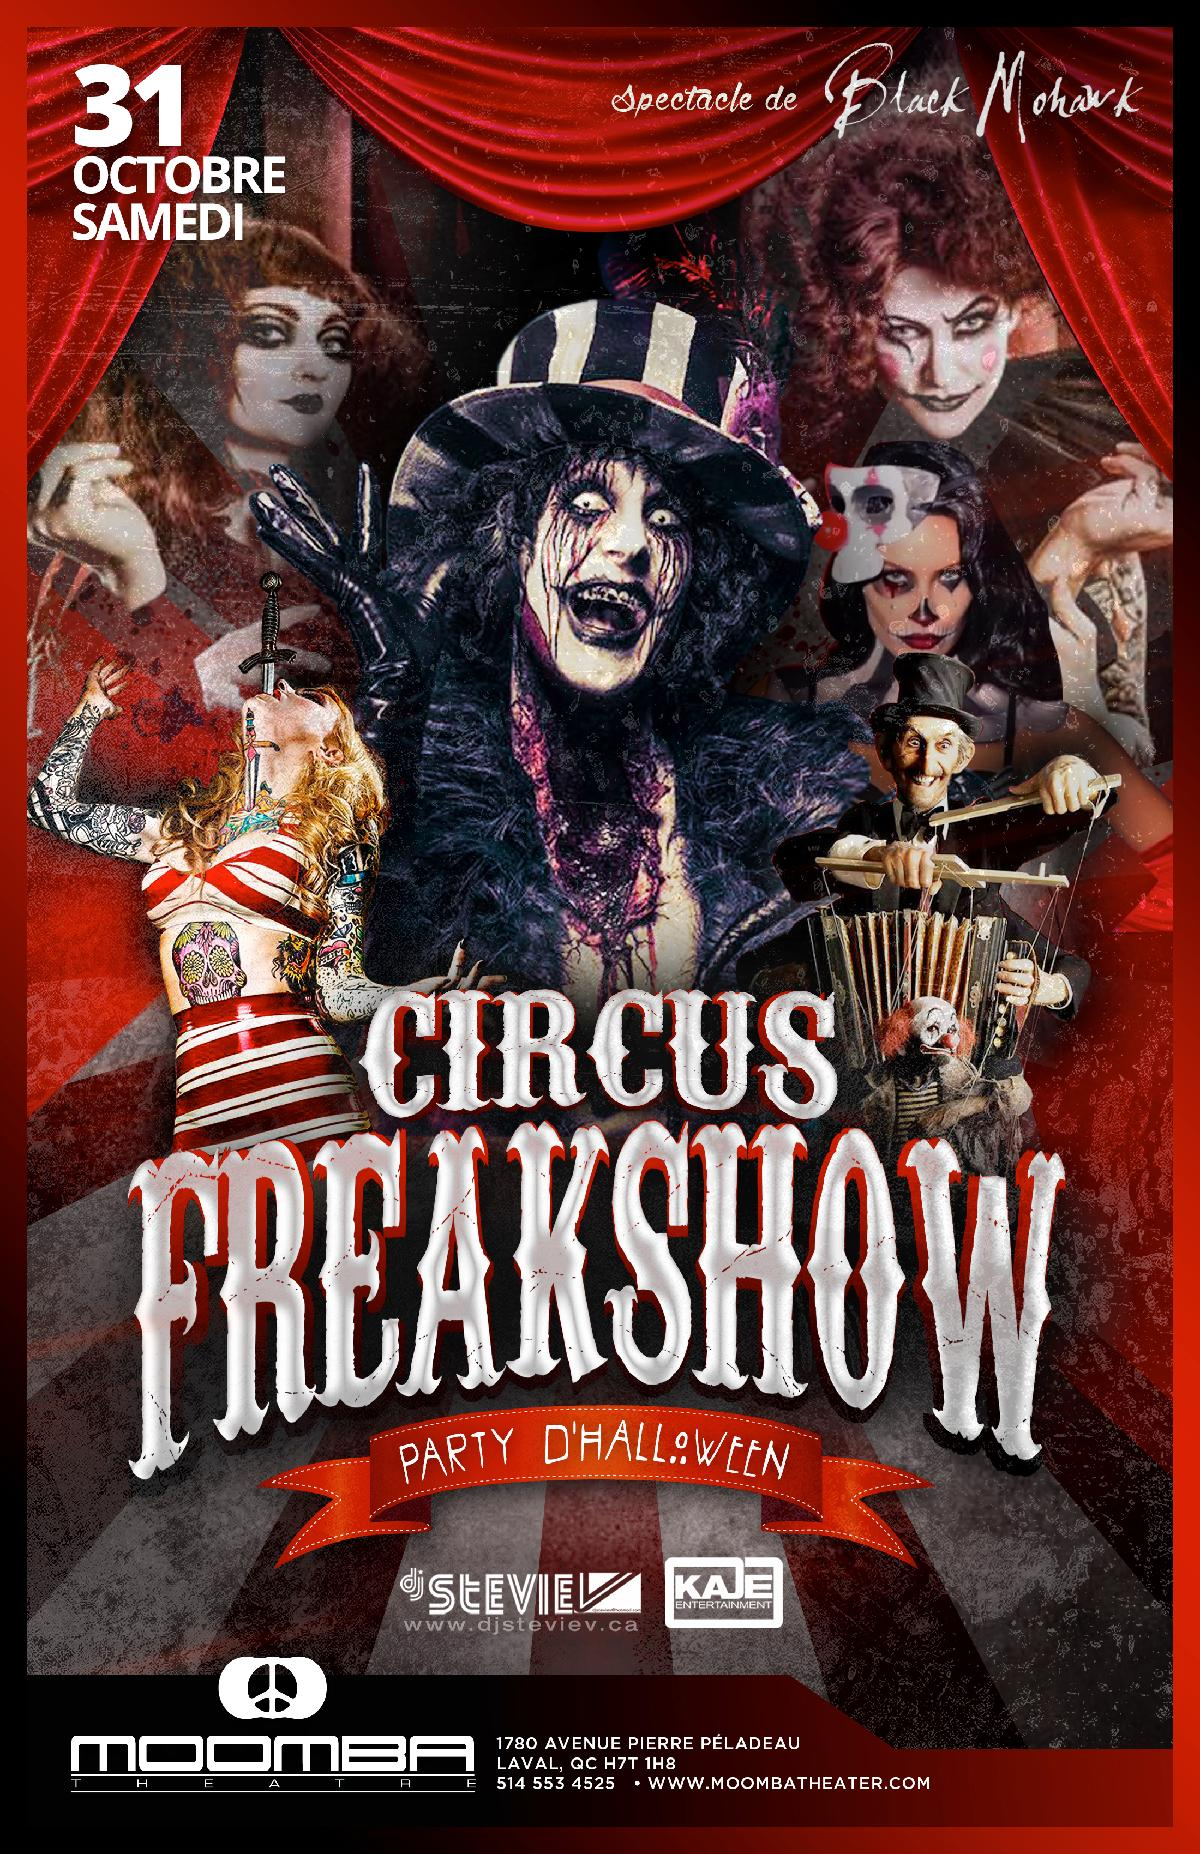 CIRCUS FREAKSHOW (Official Halloween event) :: Moomba Theater